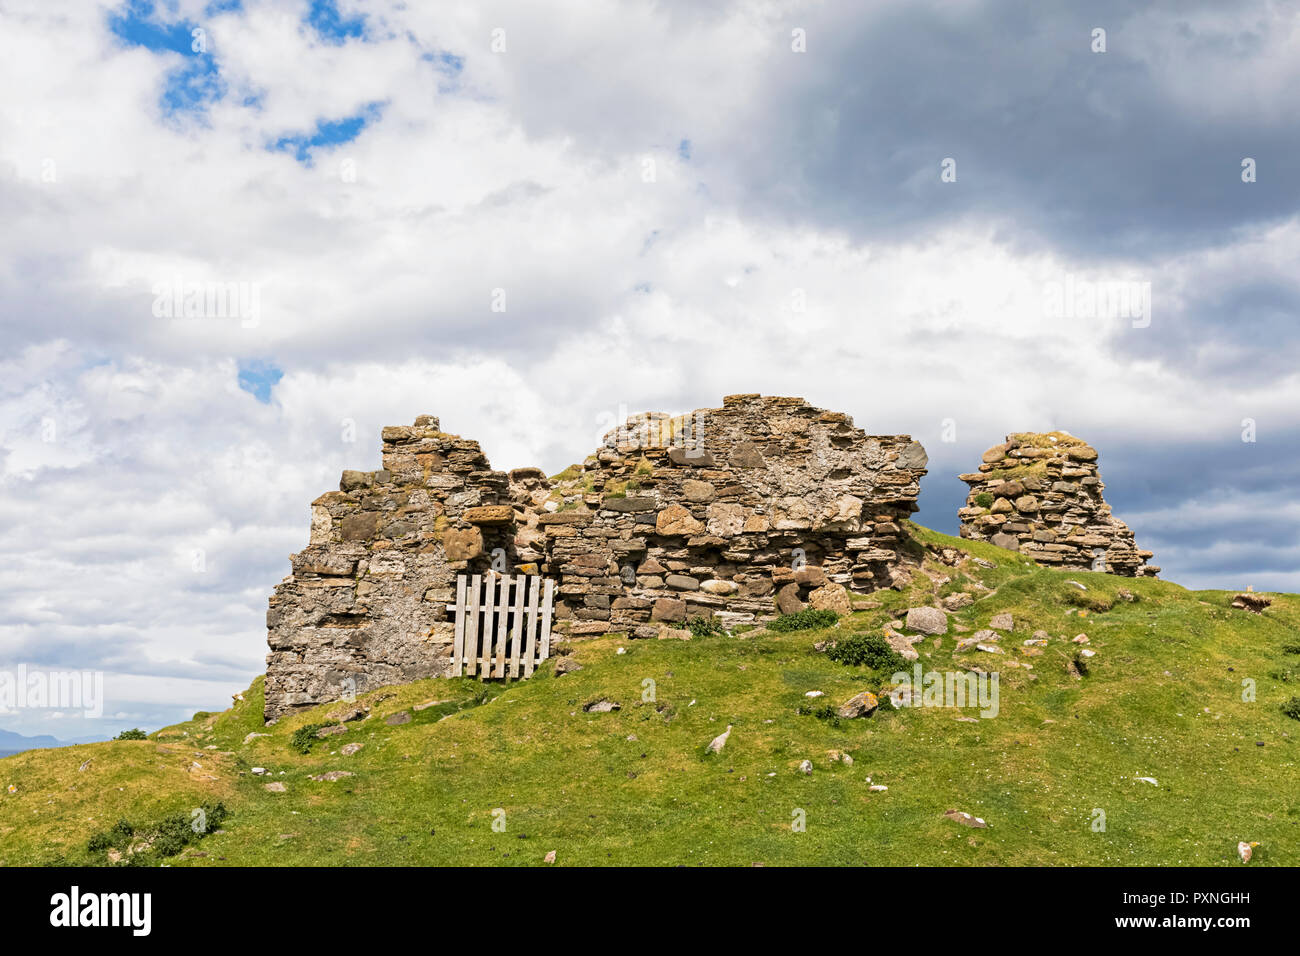 UK, Scotland, Inner Hebrides, Isle of Skye, Bay, Duntulm Castle ruins - Stock Image